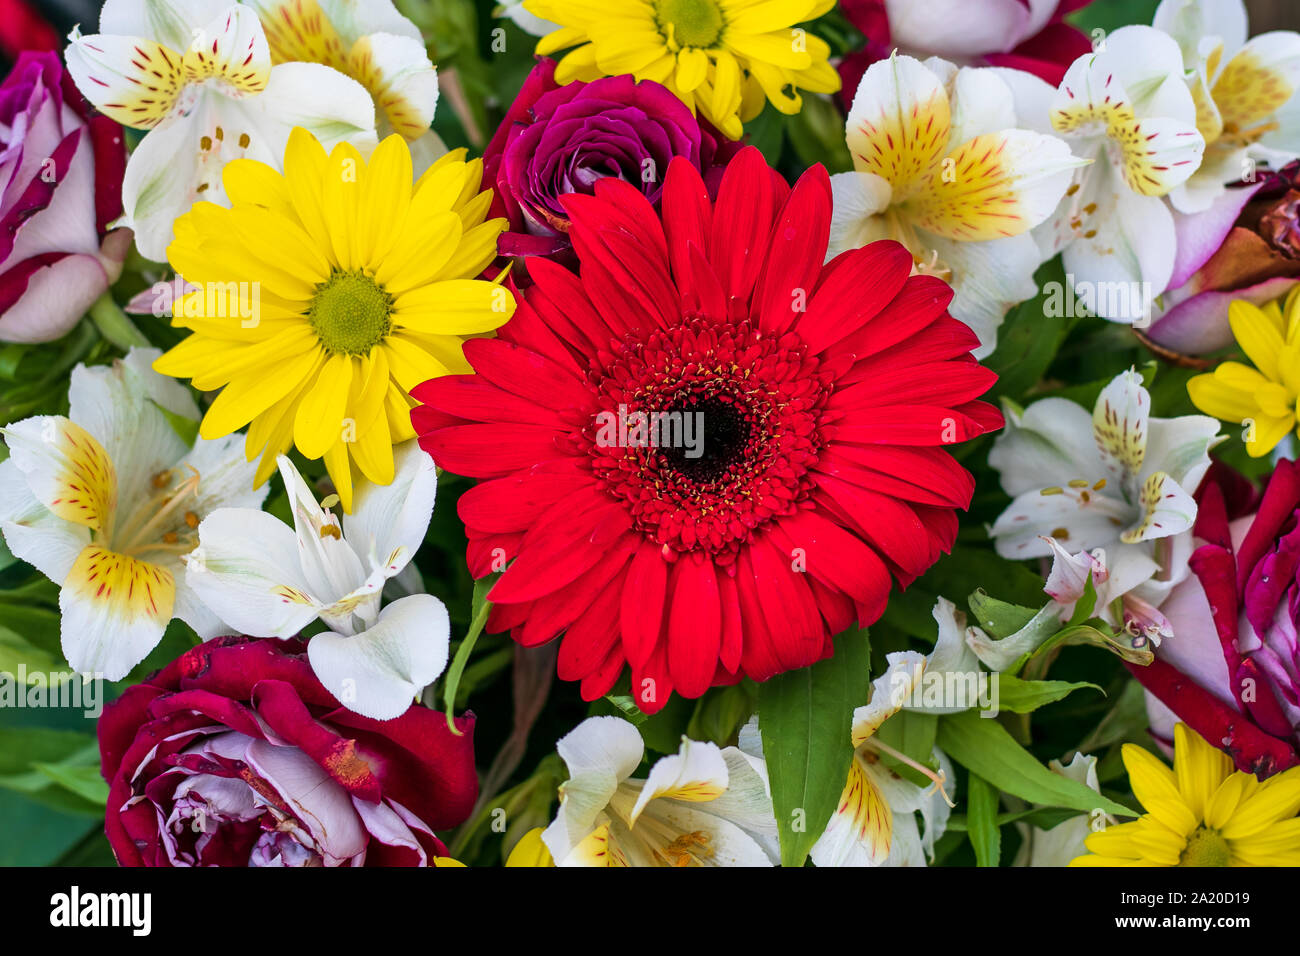 Bouquet of fresh flowers. Flower arrangement. Floral background, pattern. Bright colorful greeting card. Top view. Stock Photo